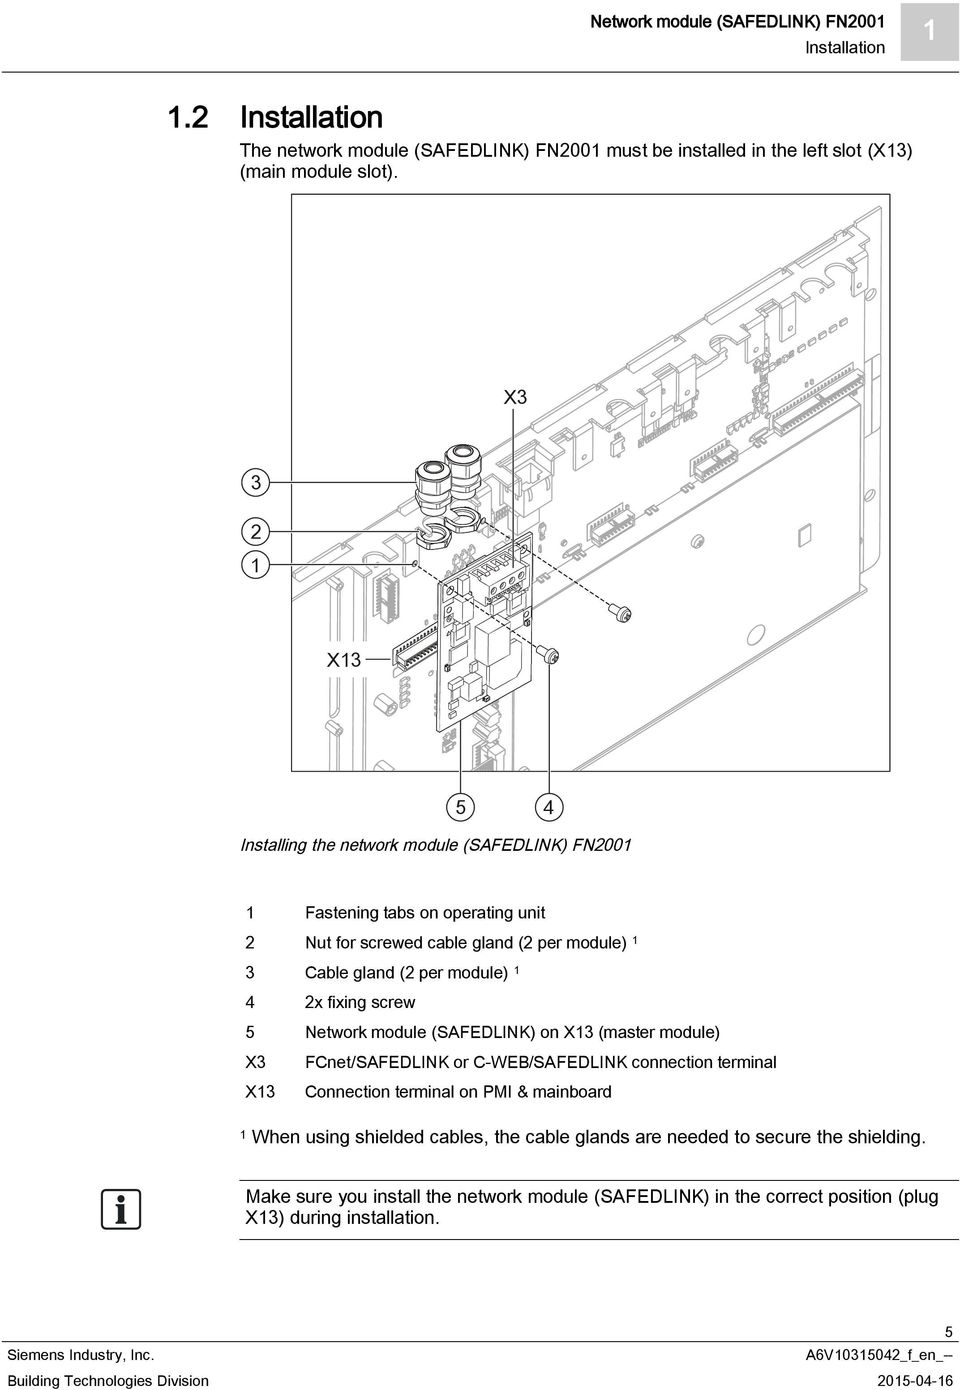 Fn2001 A1 Network Module Safedlink Mounting Installation Pdf Pmi Wiring Diagram On Master Fcnet Or C Web